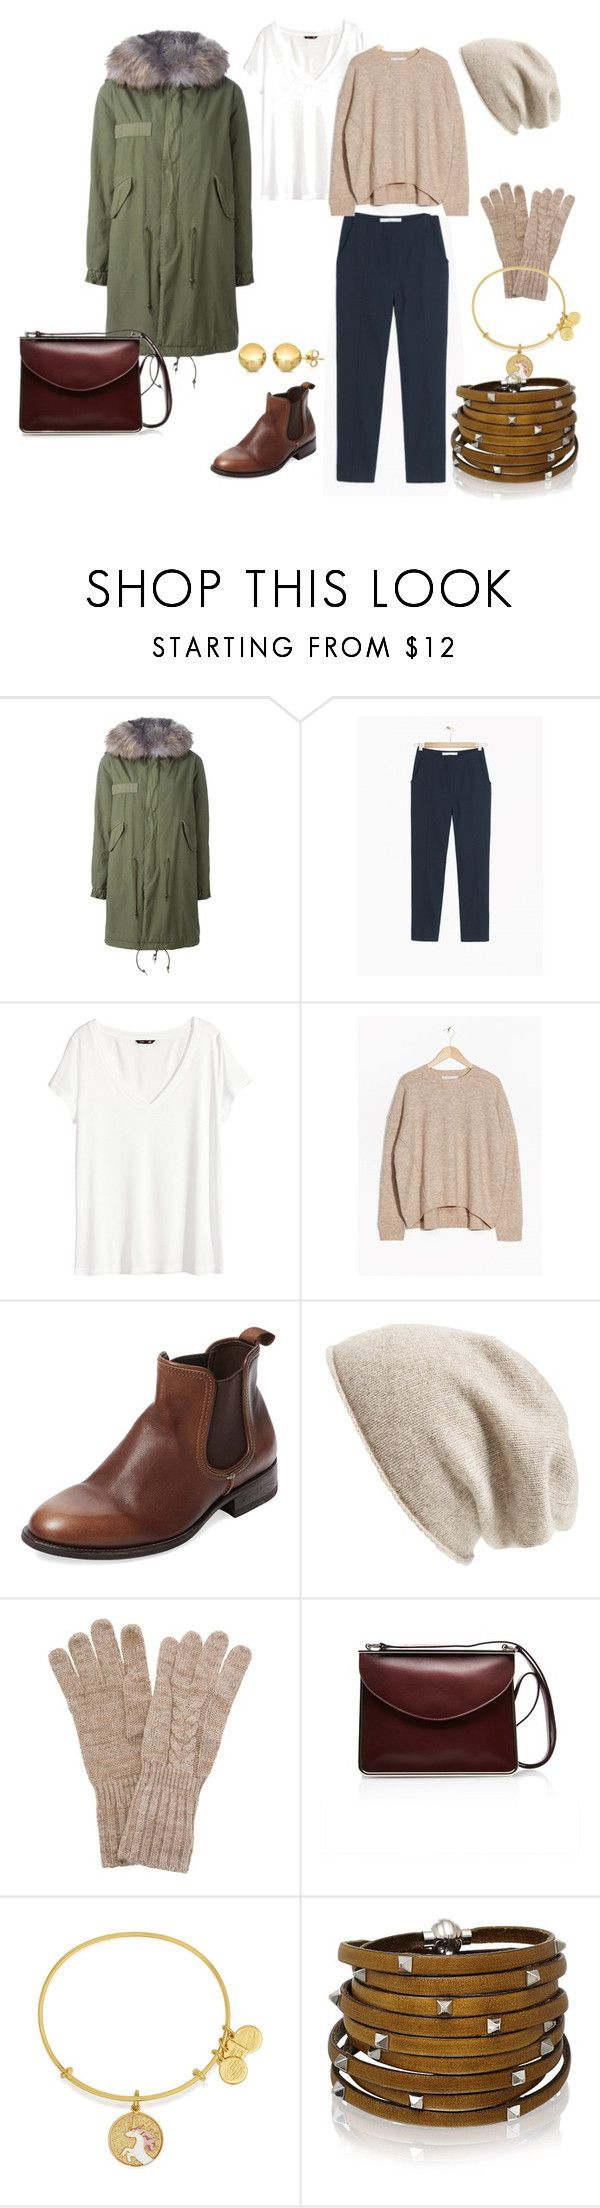 """""""Valentina cold weather weekend relaxed set"""" by stainlessstyle ❤ liked on Polyvore featuring Mr & Mrs Italy, H&M, n.d.c., Halogen, White House Black Market, Carven, Alex and Ani, Sif Jakobs Jewellery and Sevil Designs"""